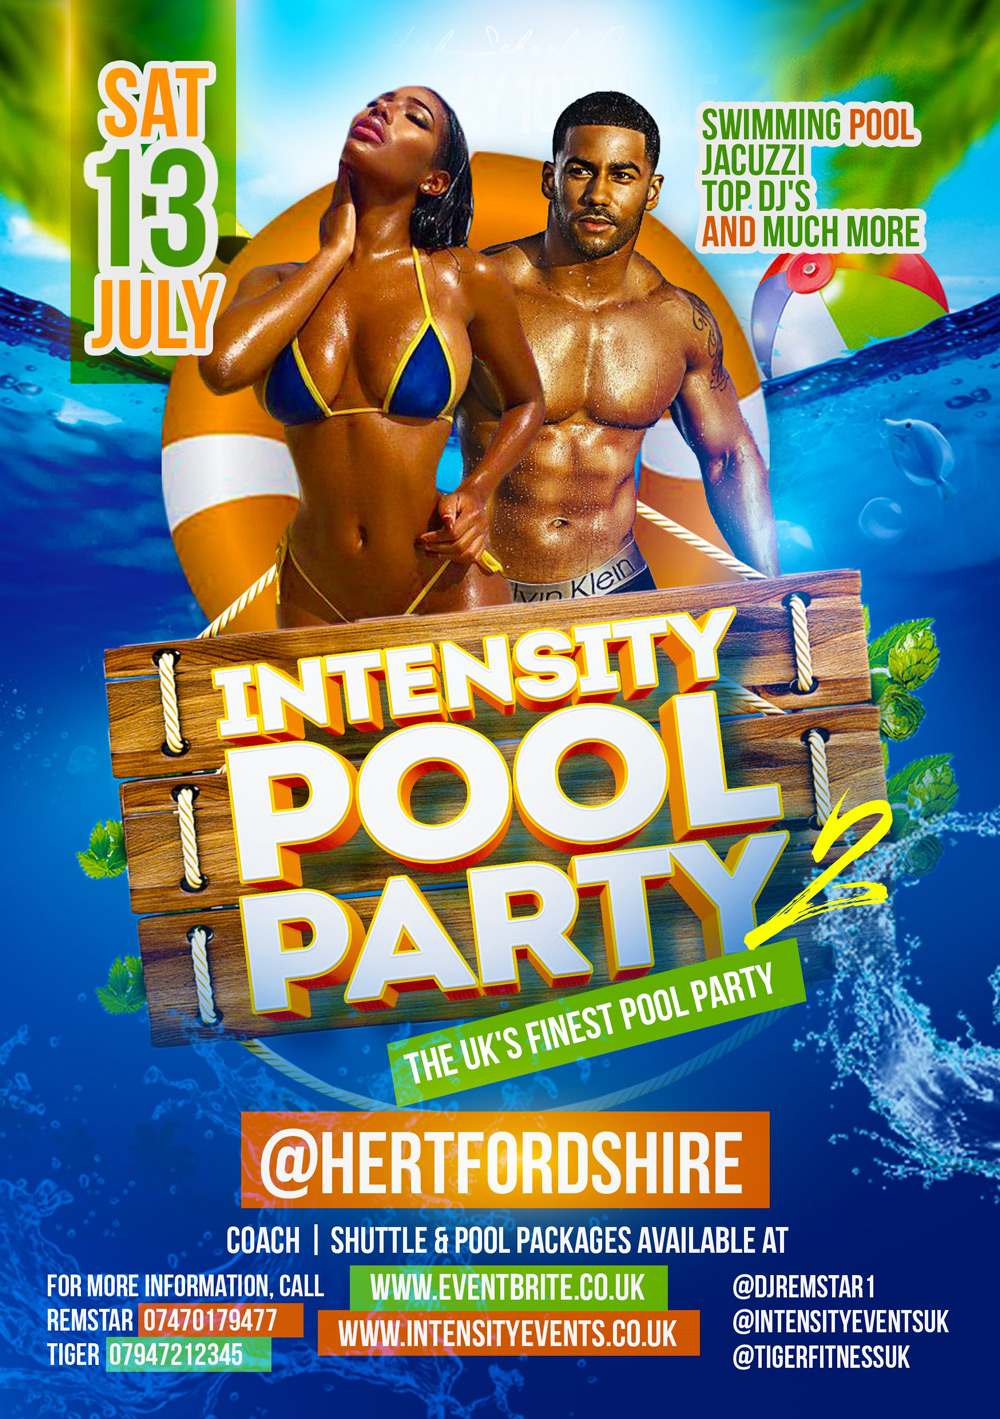 Intensity Pool Party | Soca News